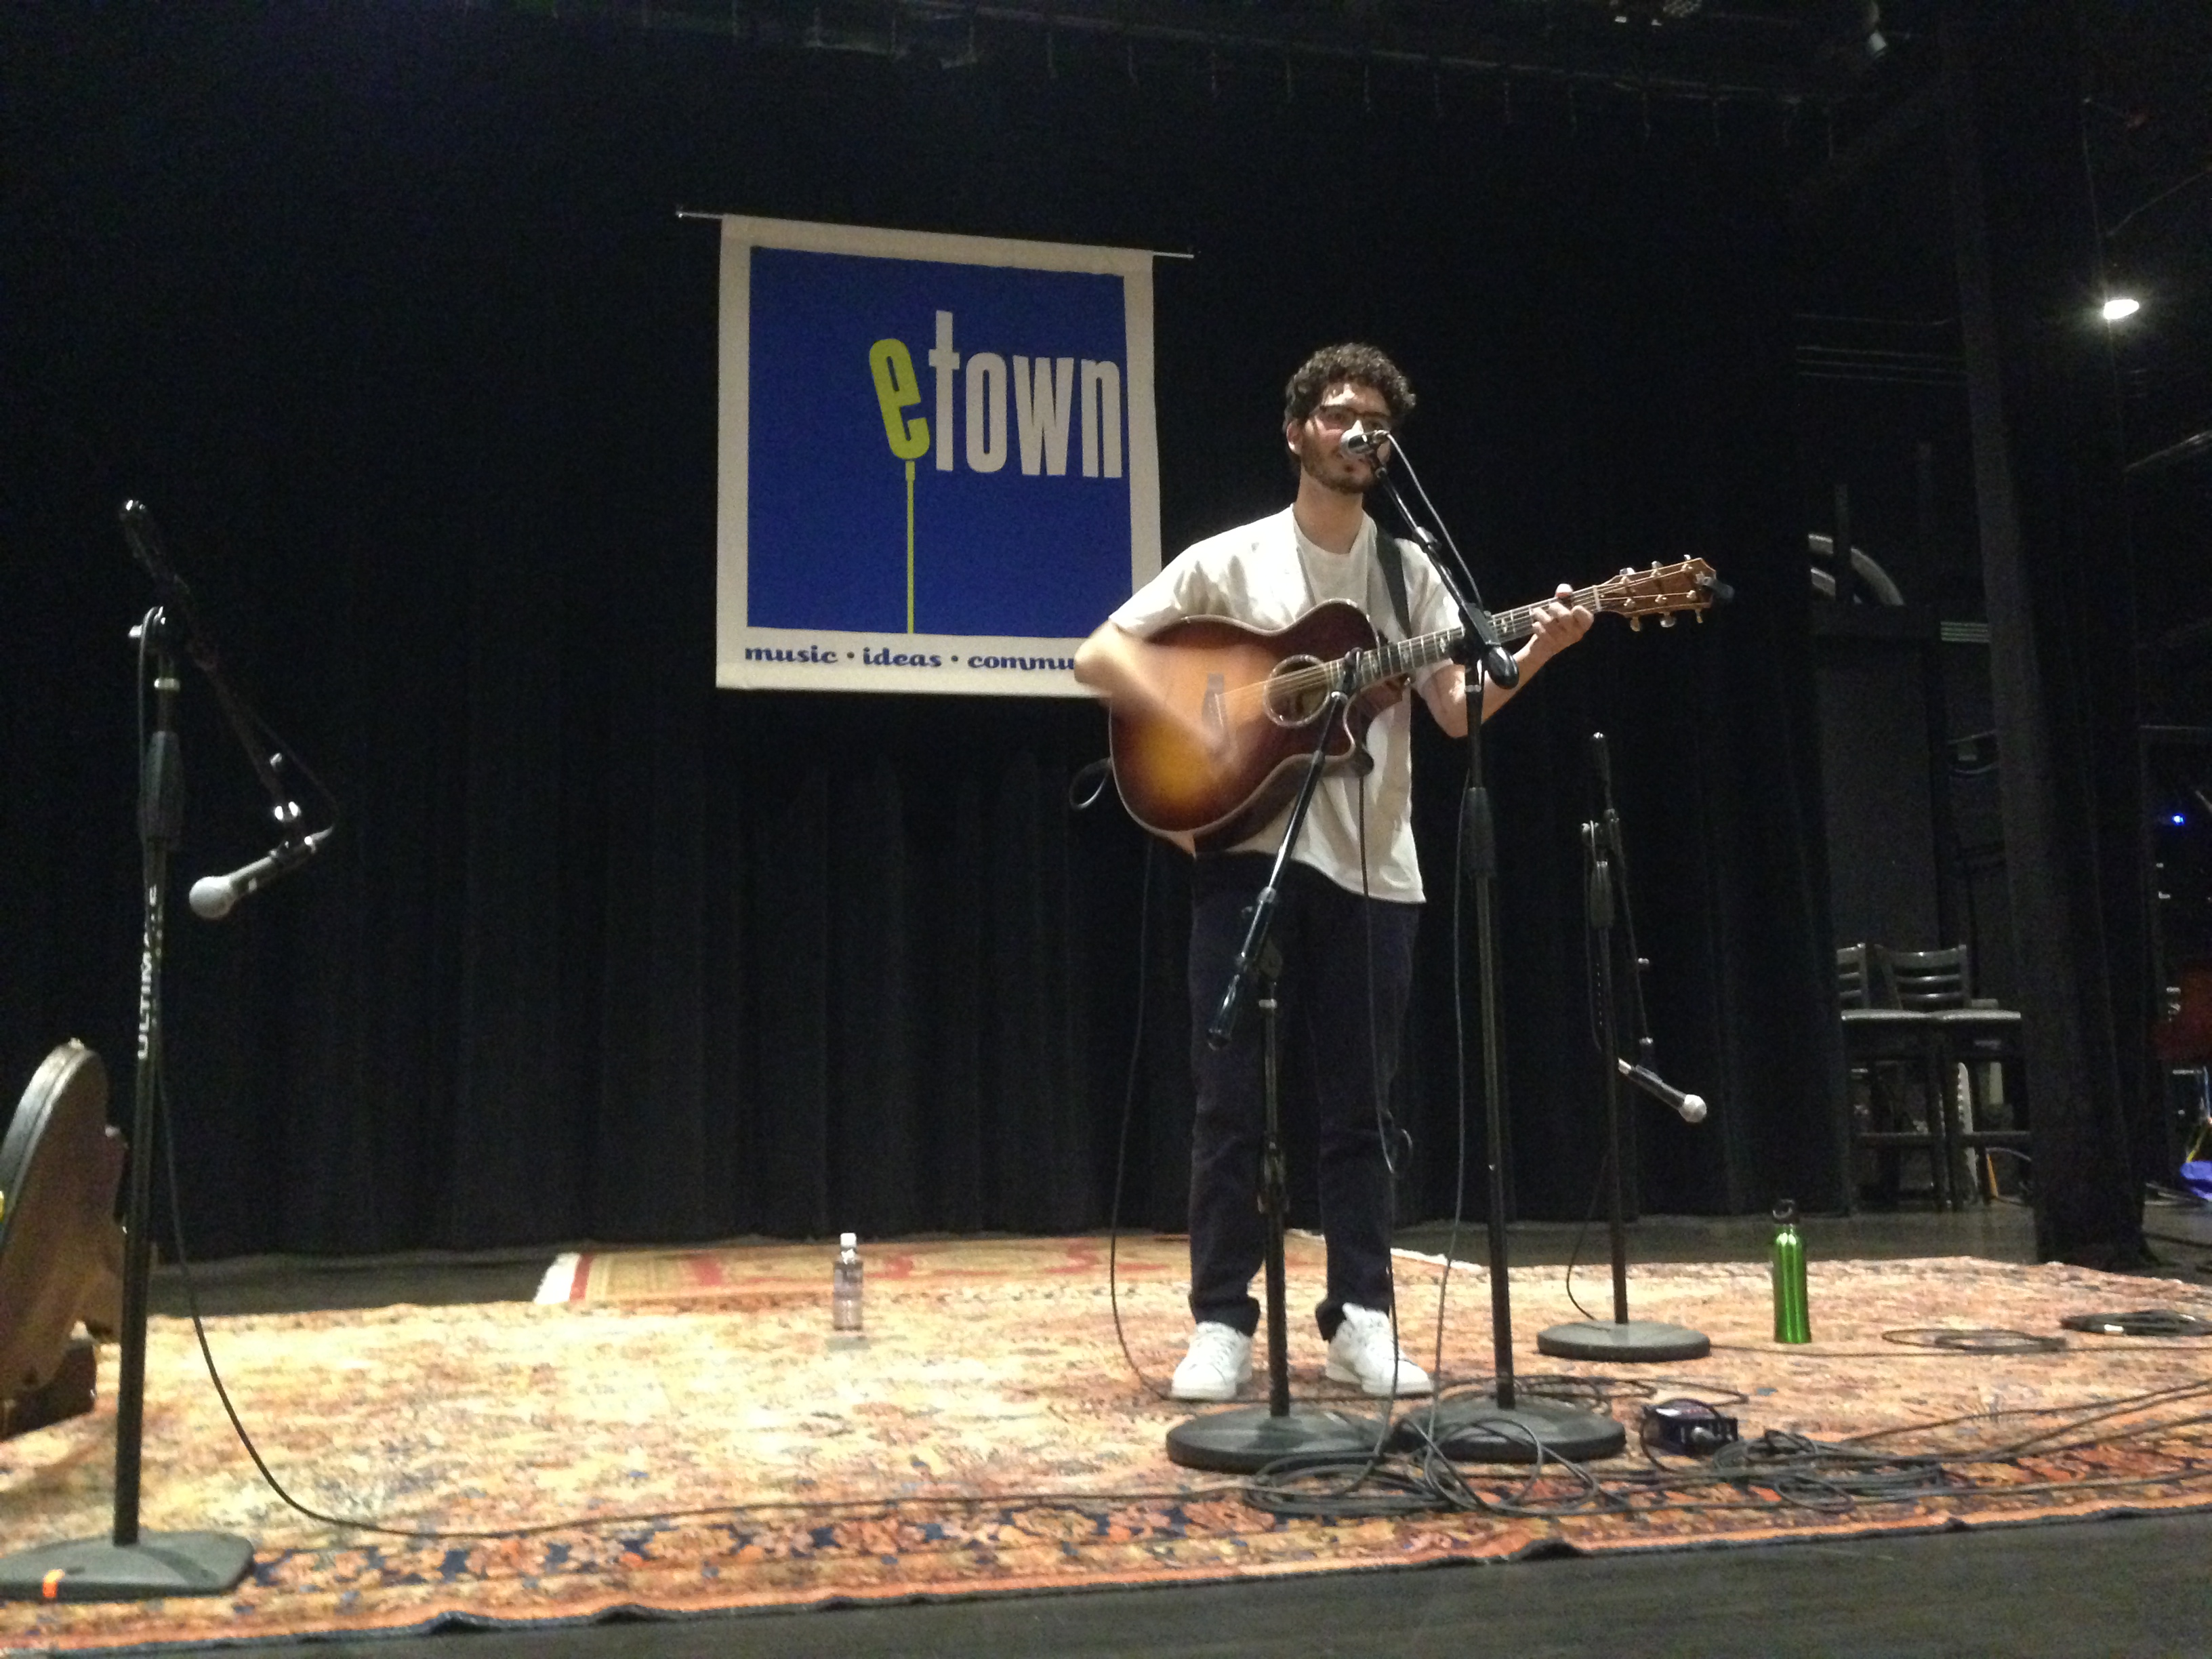 Photo: Avi Kolbrener of eTown Handmade Songs program